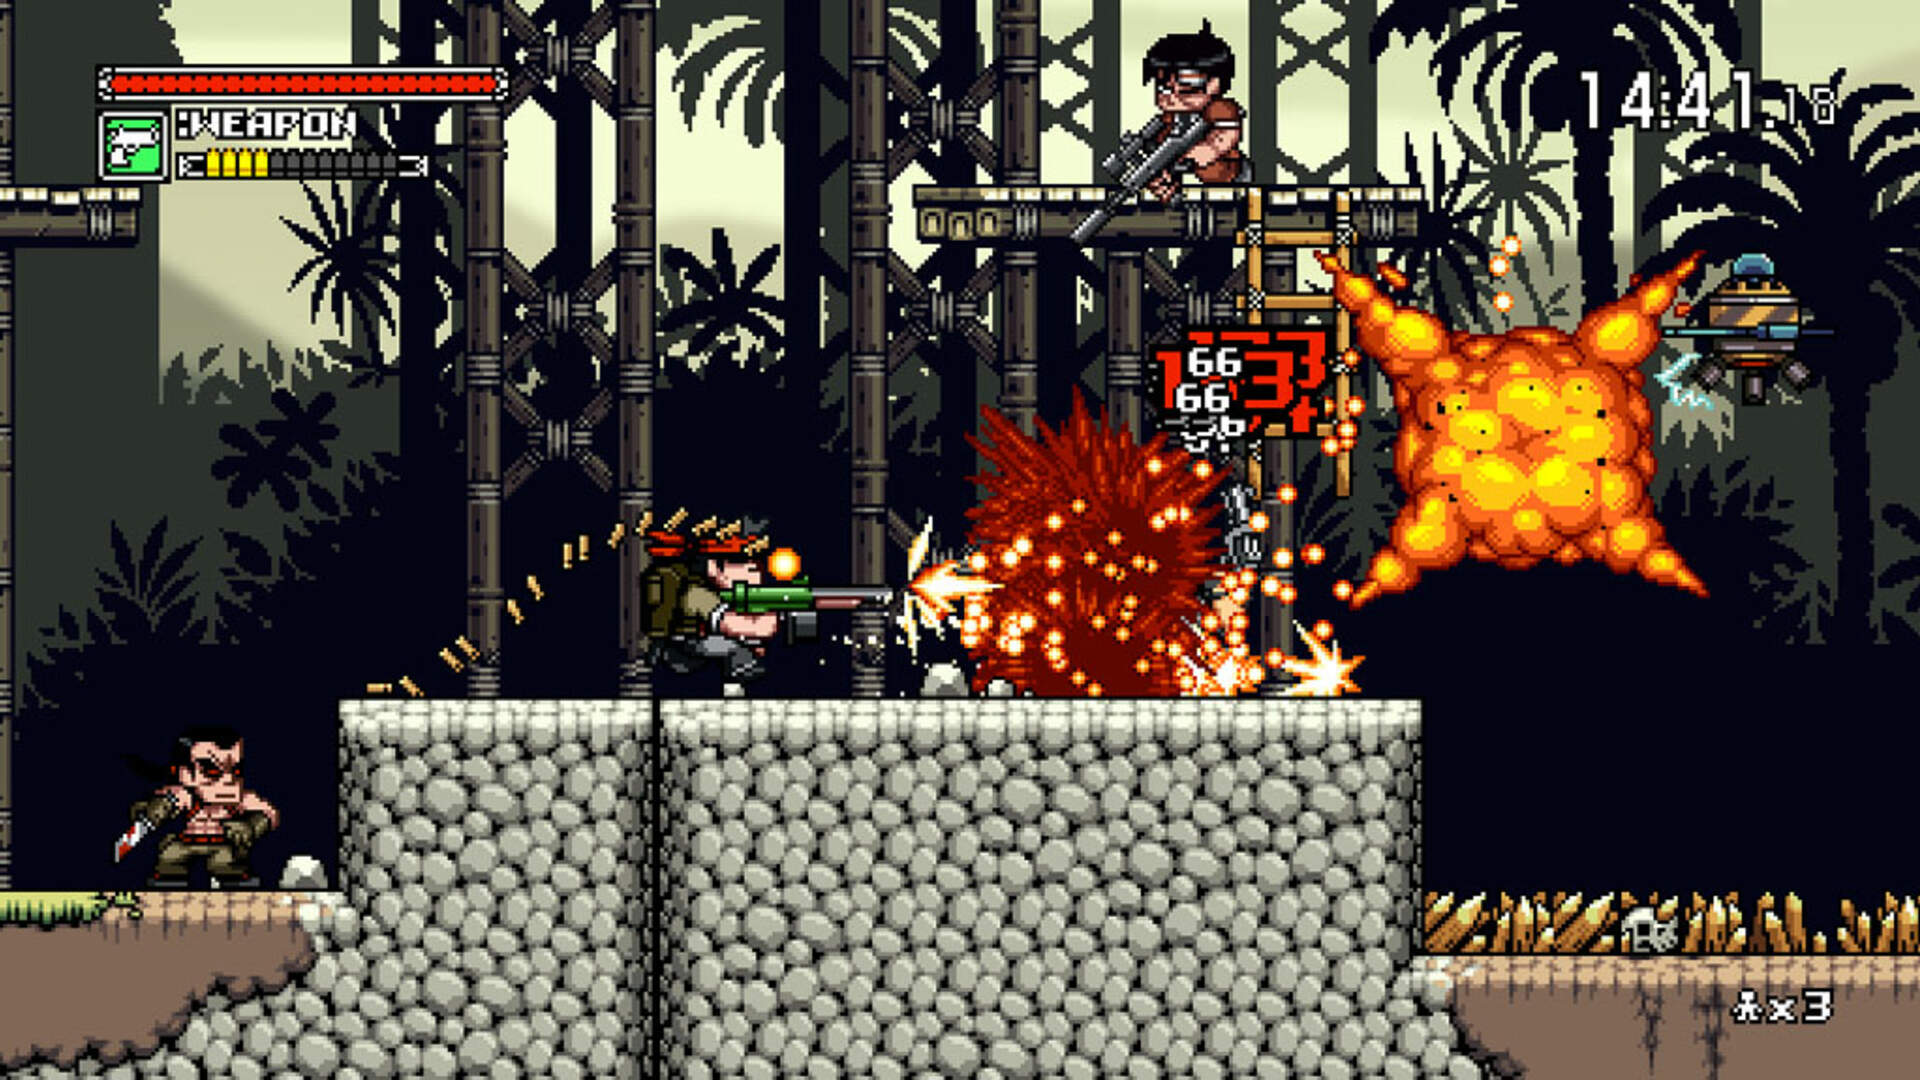 Mercenary Kings PS4 Review: A Modern Day Blast from the Past